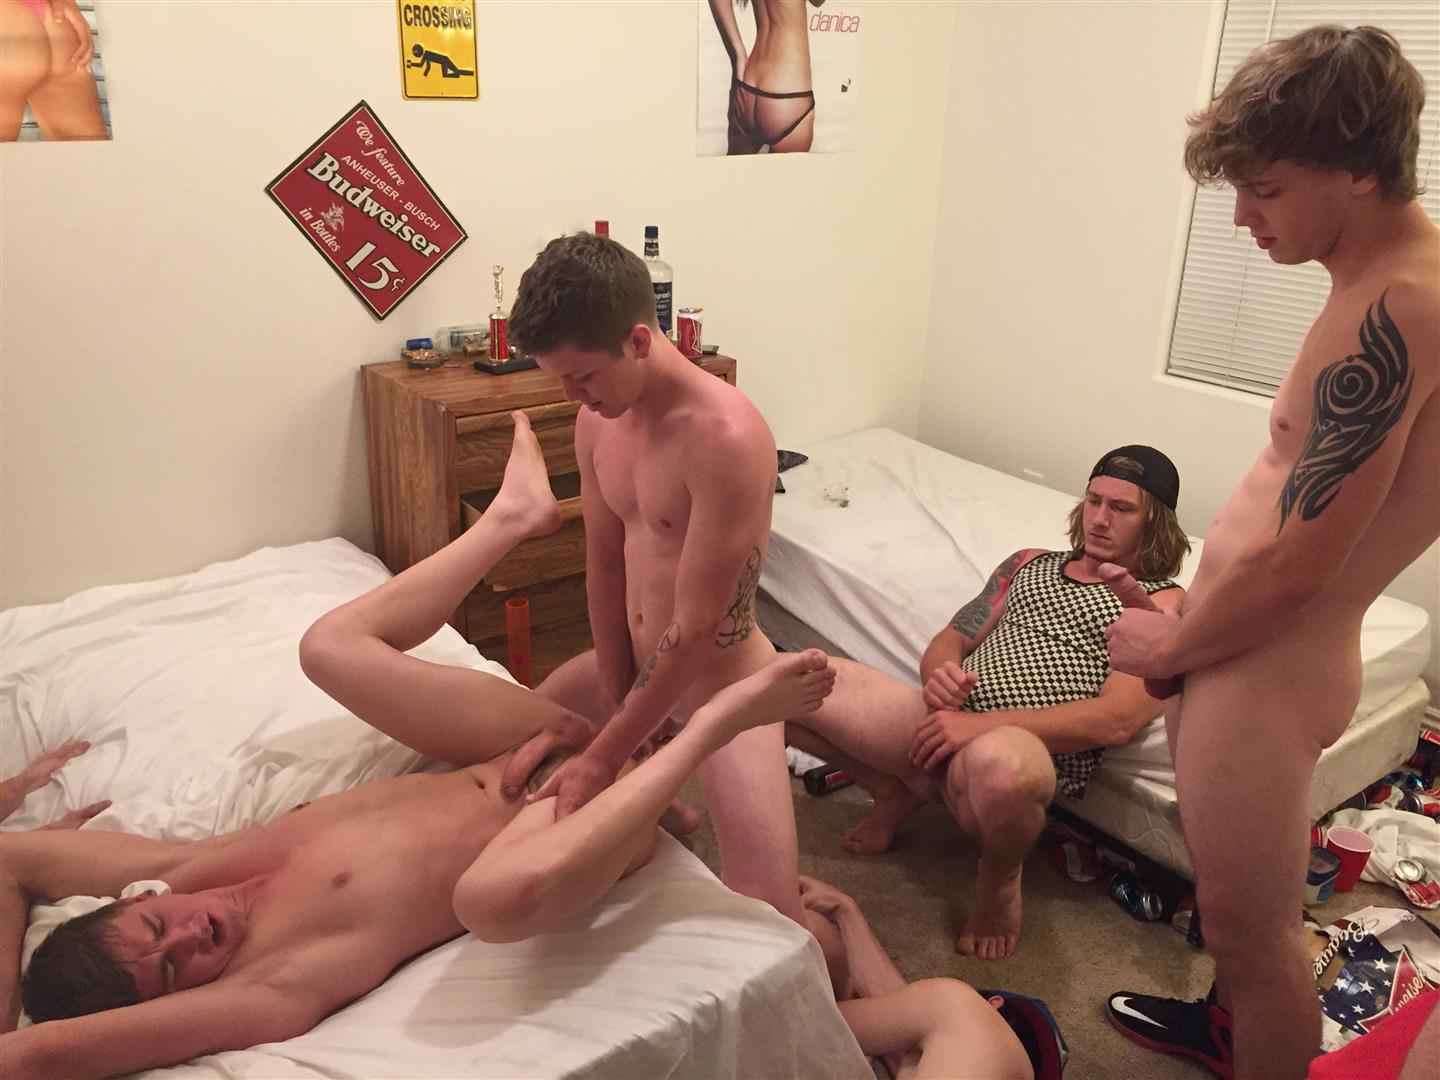 Fraternity X Naked Frat Boys Barebacking Freshman Ass Amateur Gay Porn 06 Fraternity Boys Take Turns Barebacking A Scared Freshman Ass